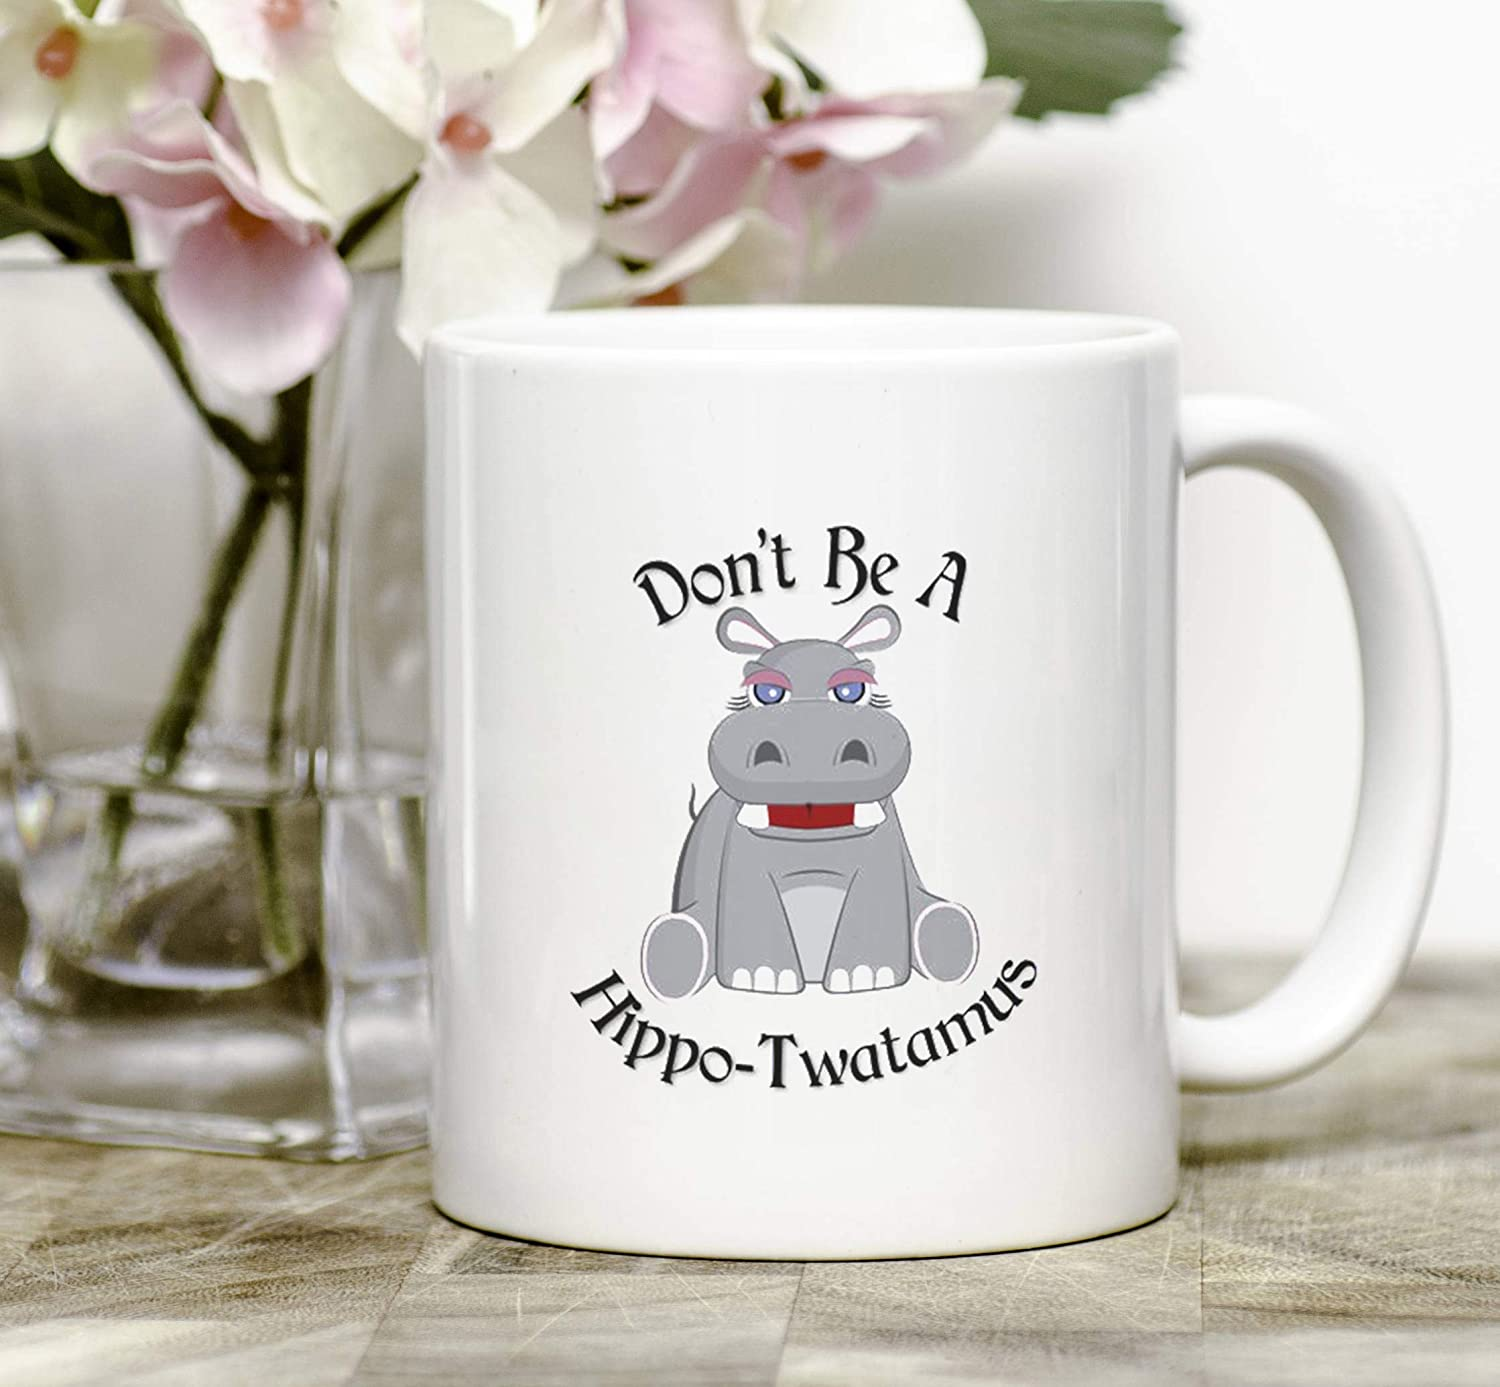 Don't be a Hippo - Twatamus Coffee Mug - Hippotwatamus Coffee Cup